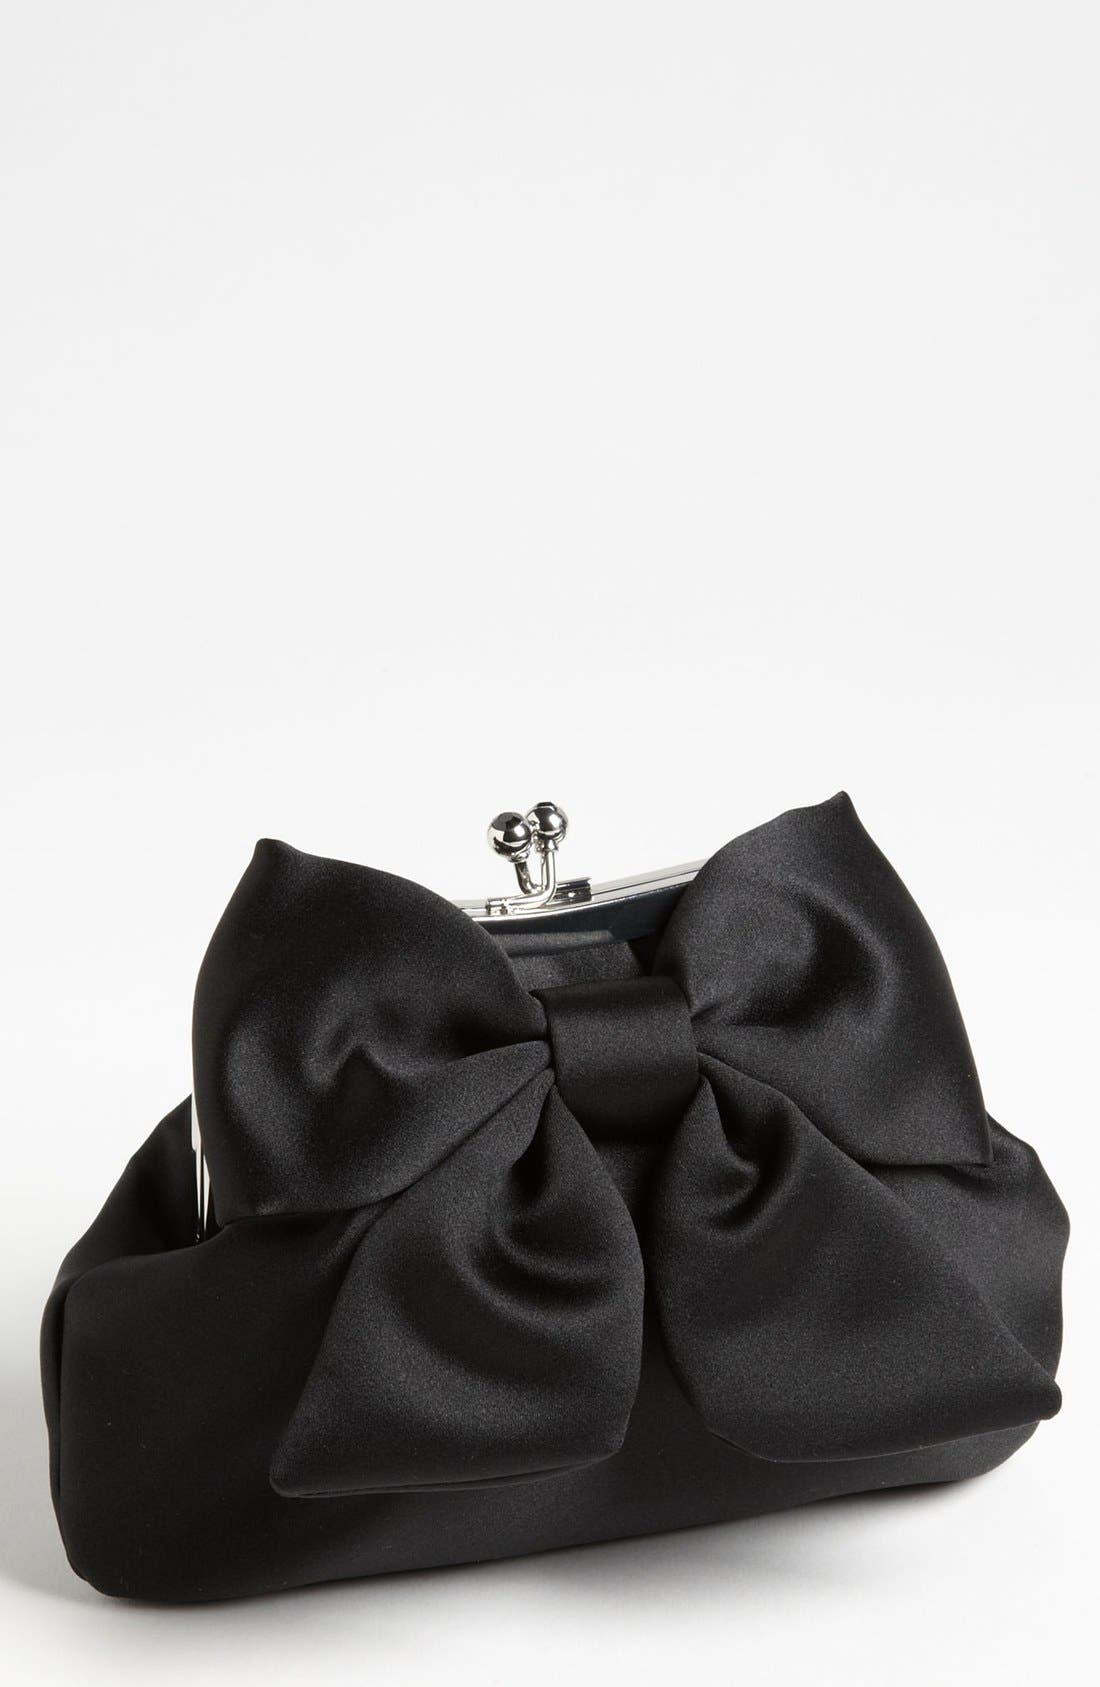 Alternate Image 1 Selected - Sondra Roberts 'Large' Satin Bow Clutch